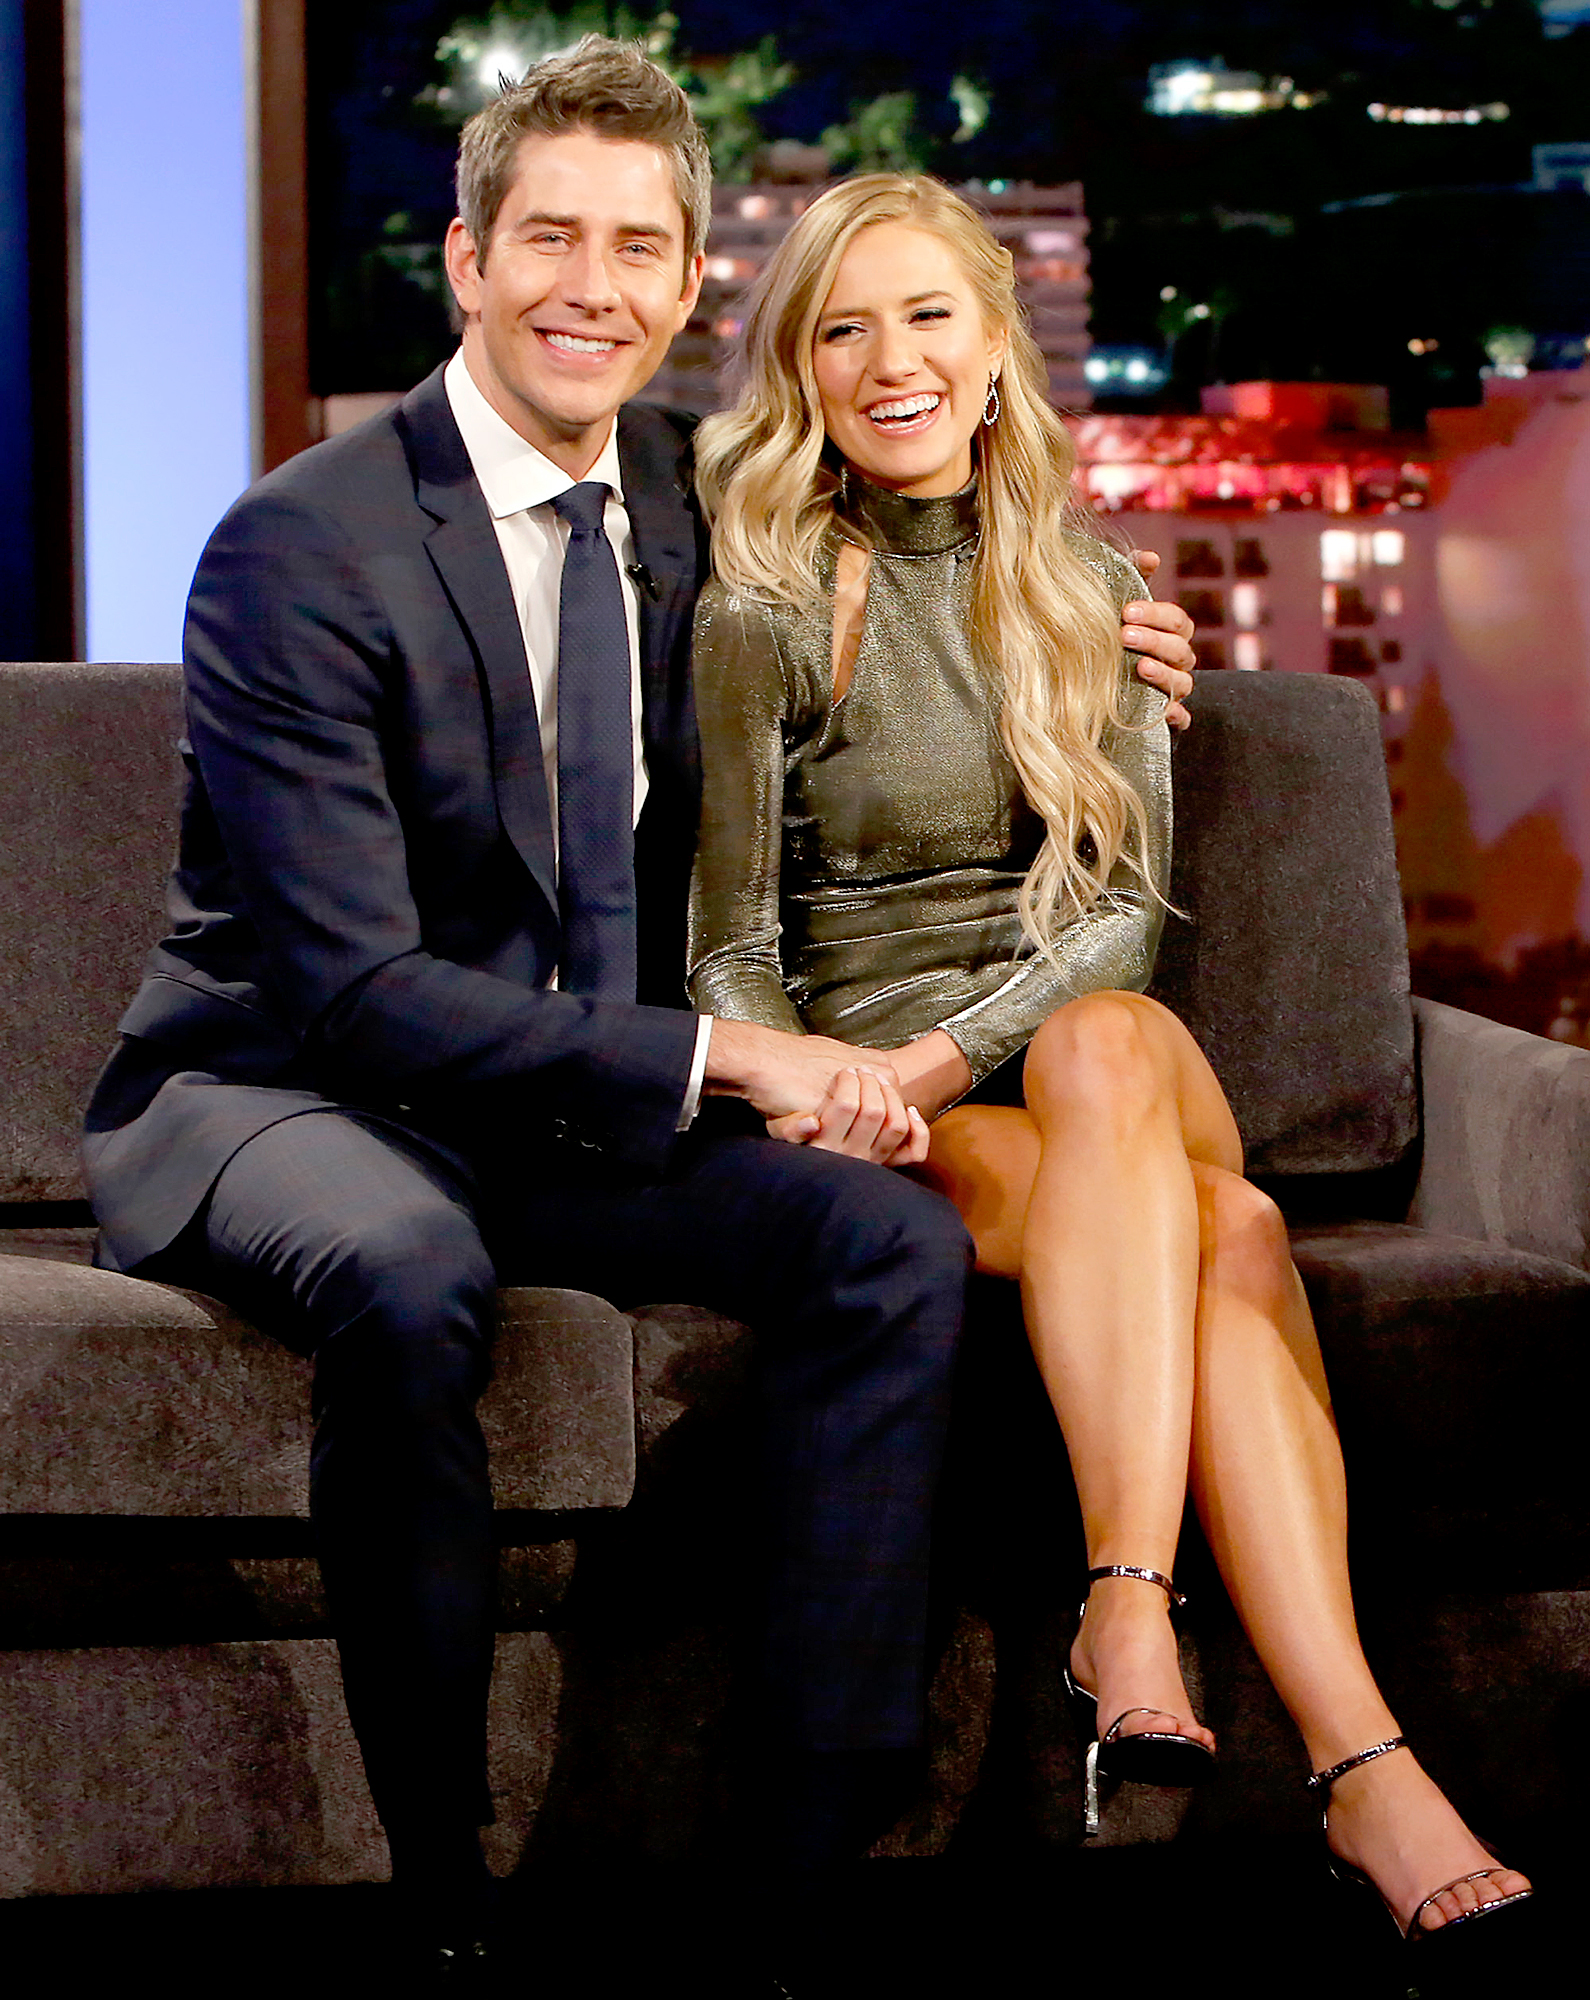 """Arie-Luyendyk-Jr. -Lauren-Burnham-quotes - Luyendyk Jr. made it clear that he didn't care what others thought of his decision, telling Us Weekly in March 2018 of his newfound love, """" [We] have a healthy relationship . We lean on each other. I didn't do this to become popular. I did this to find someone."""""""